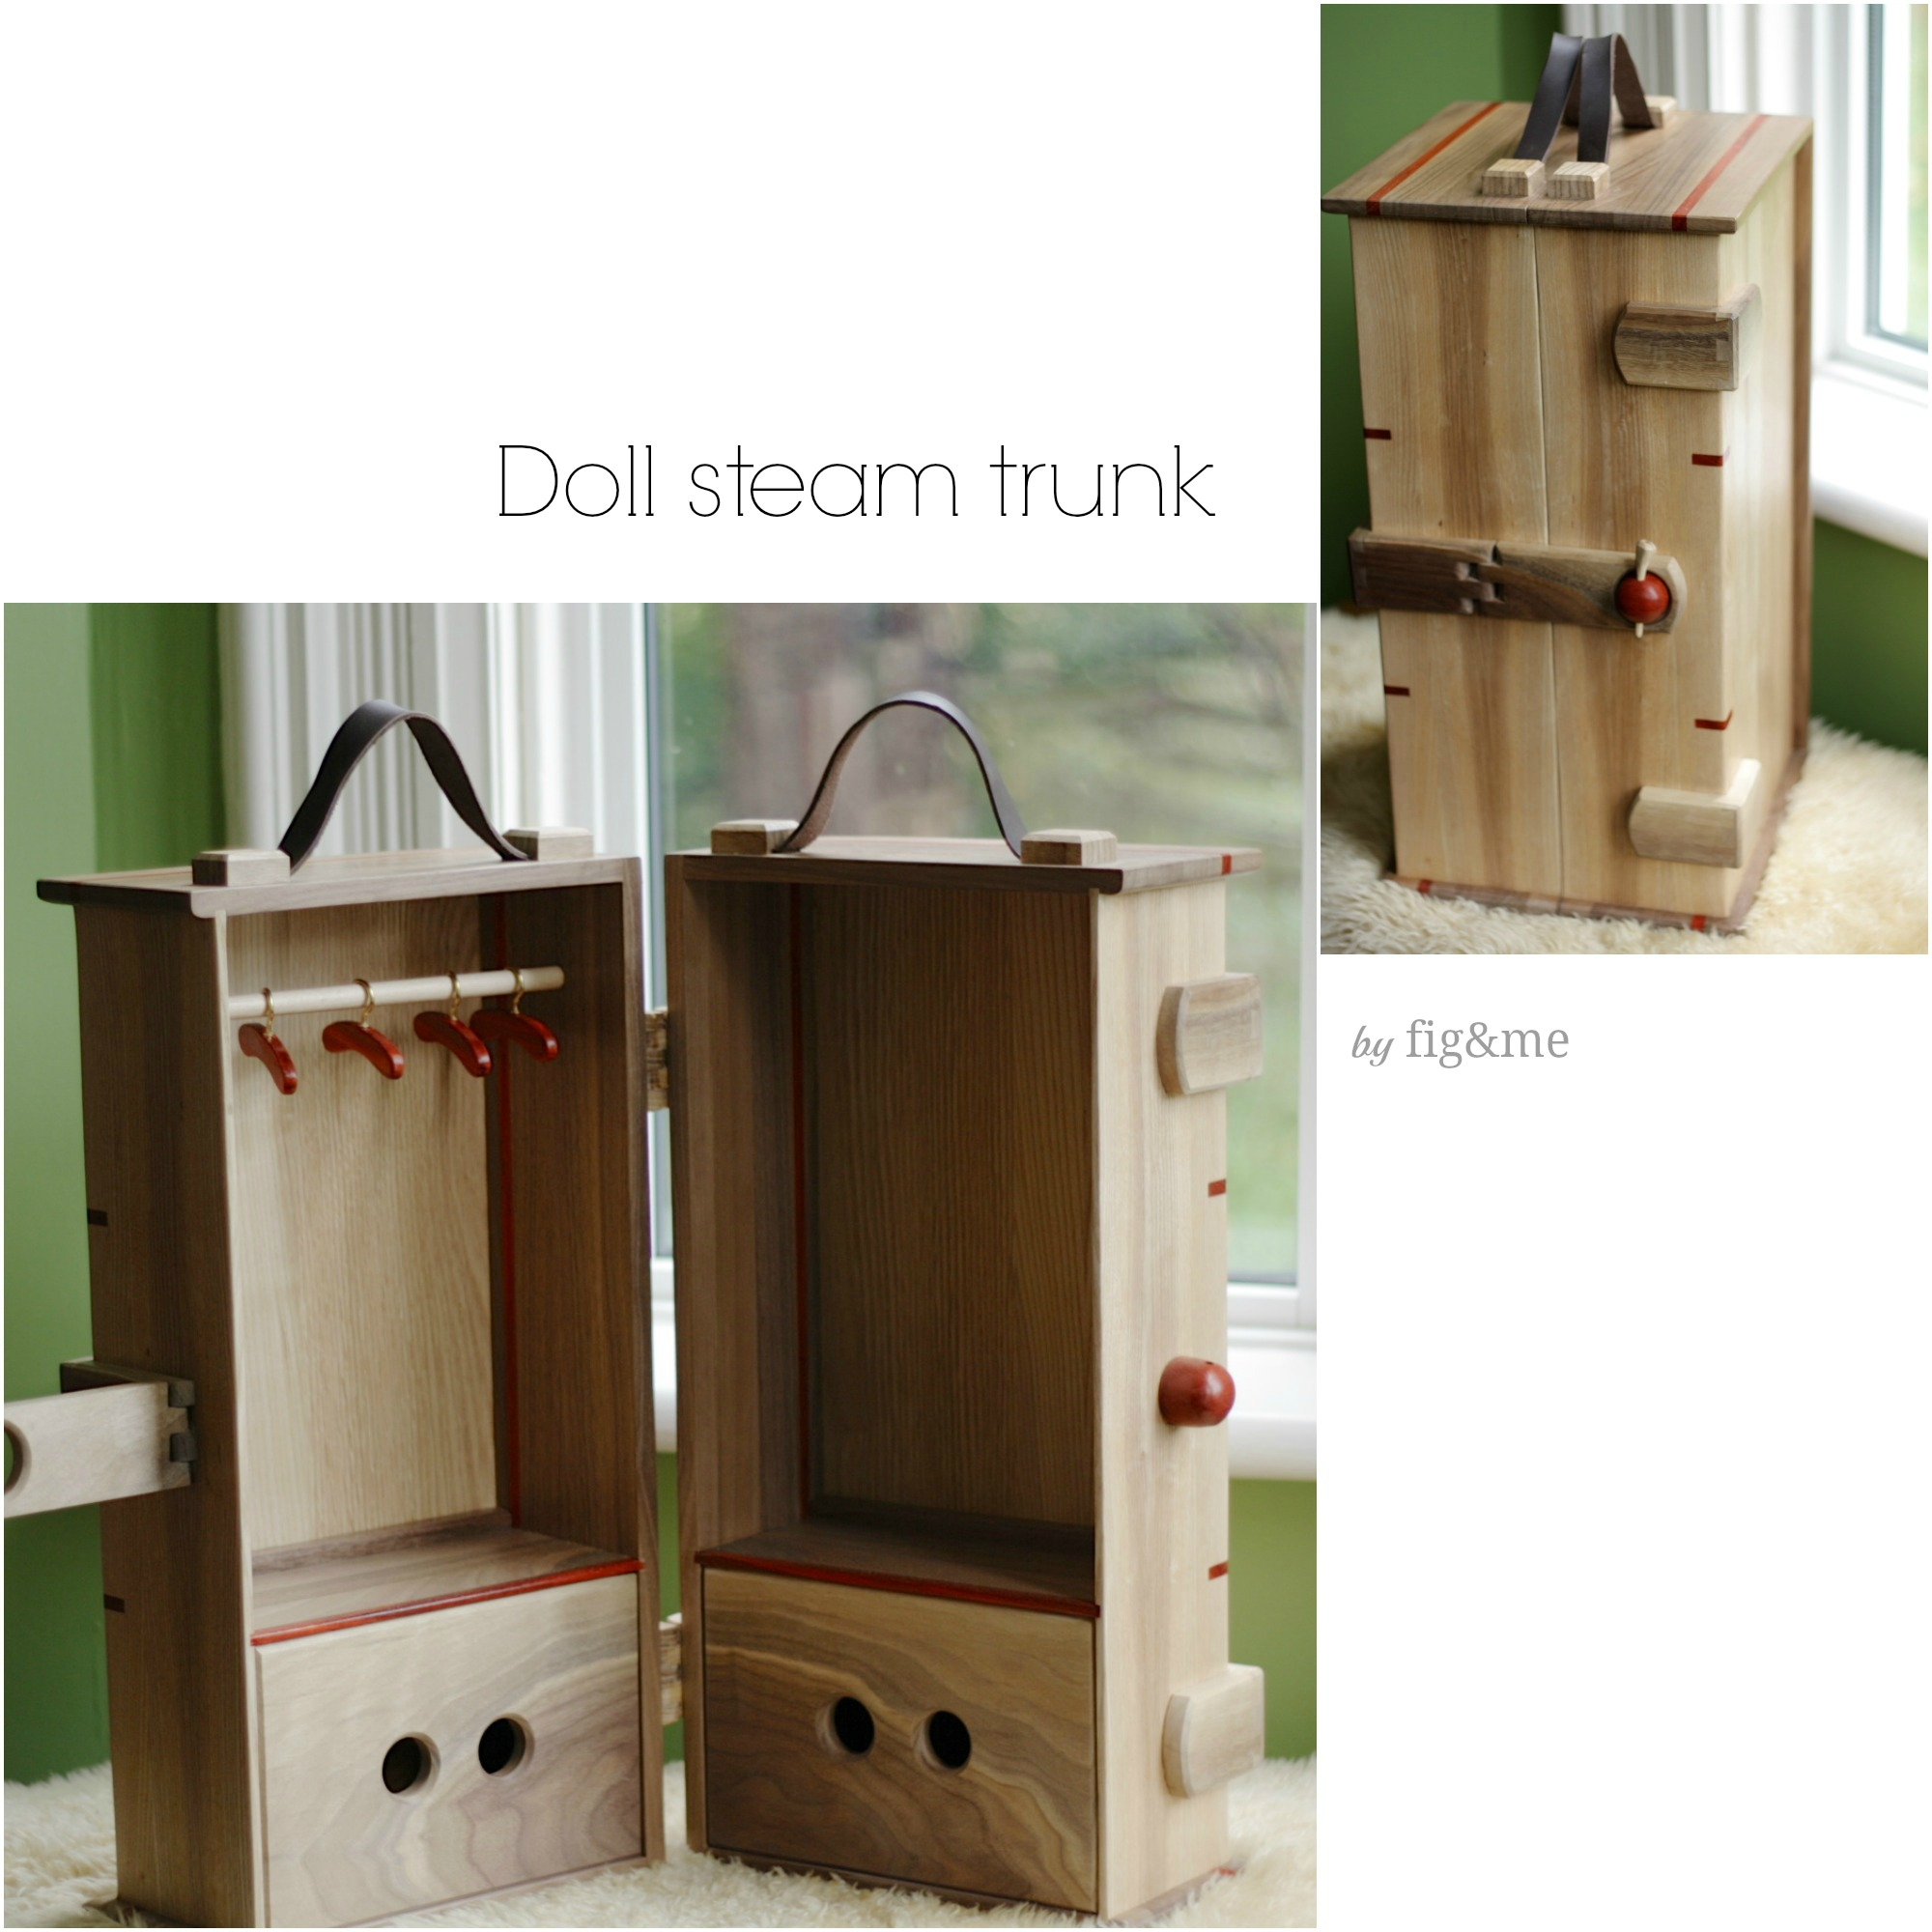 doll steam trunk, by Fig&me